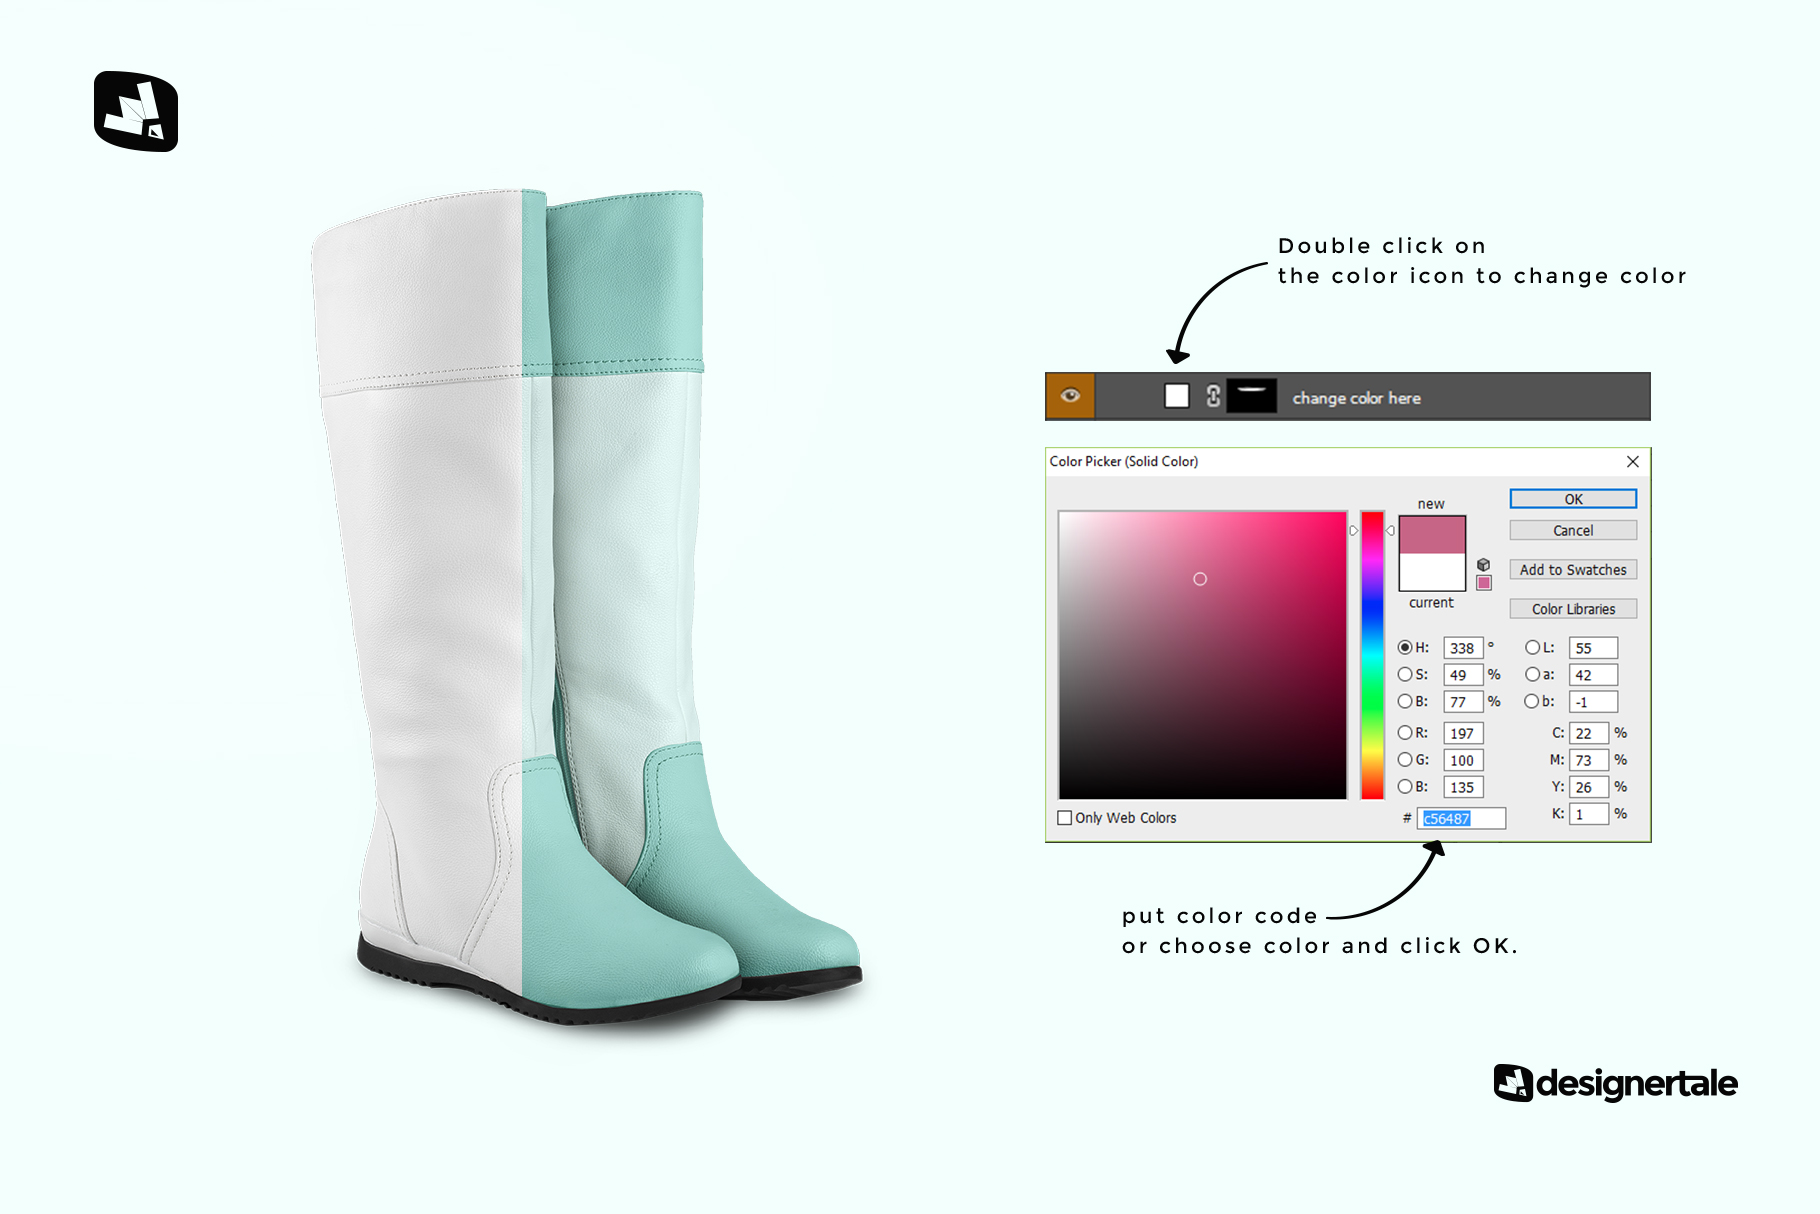 how to change color of the extended calf leather boots mockup